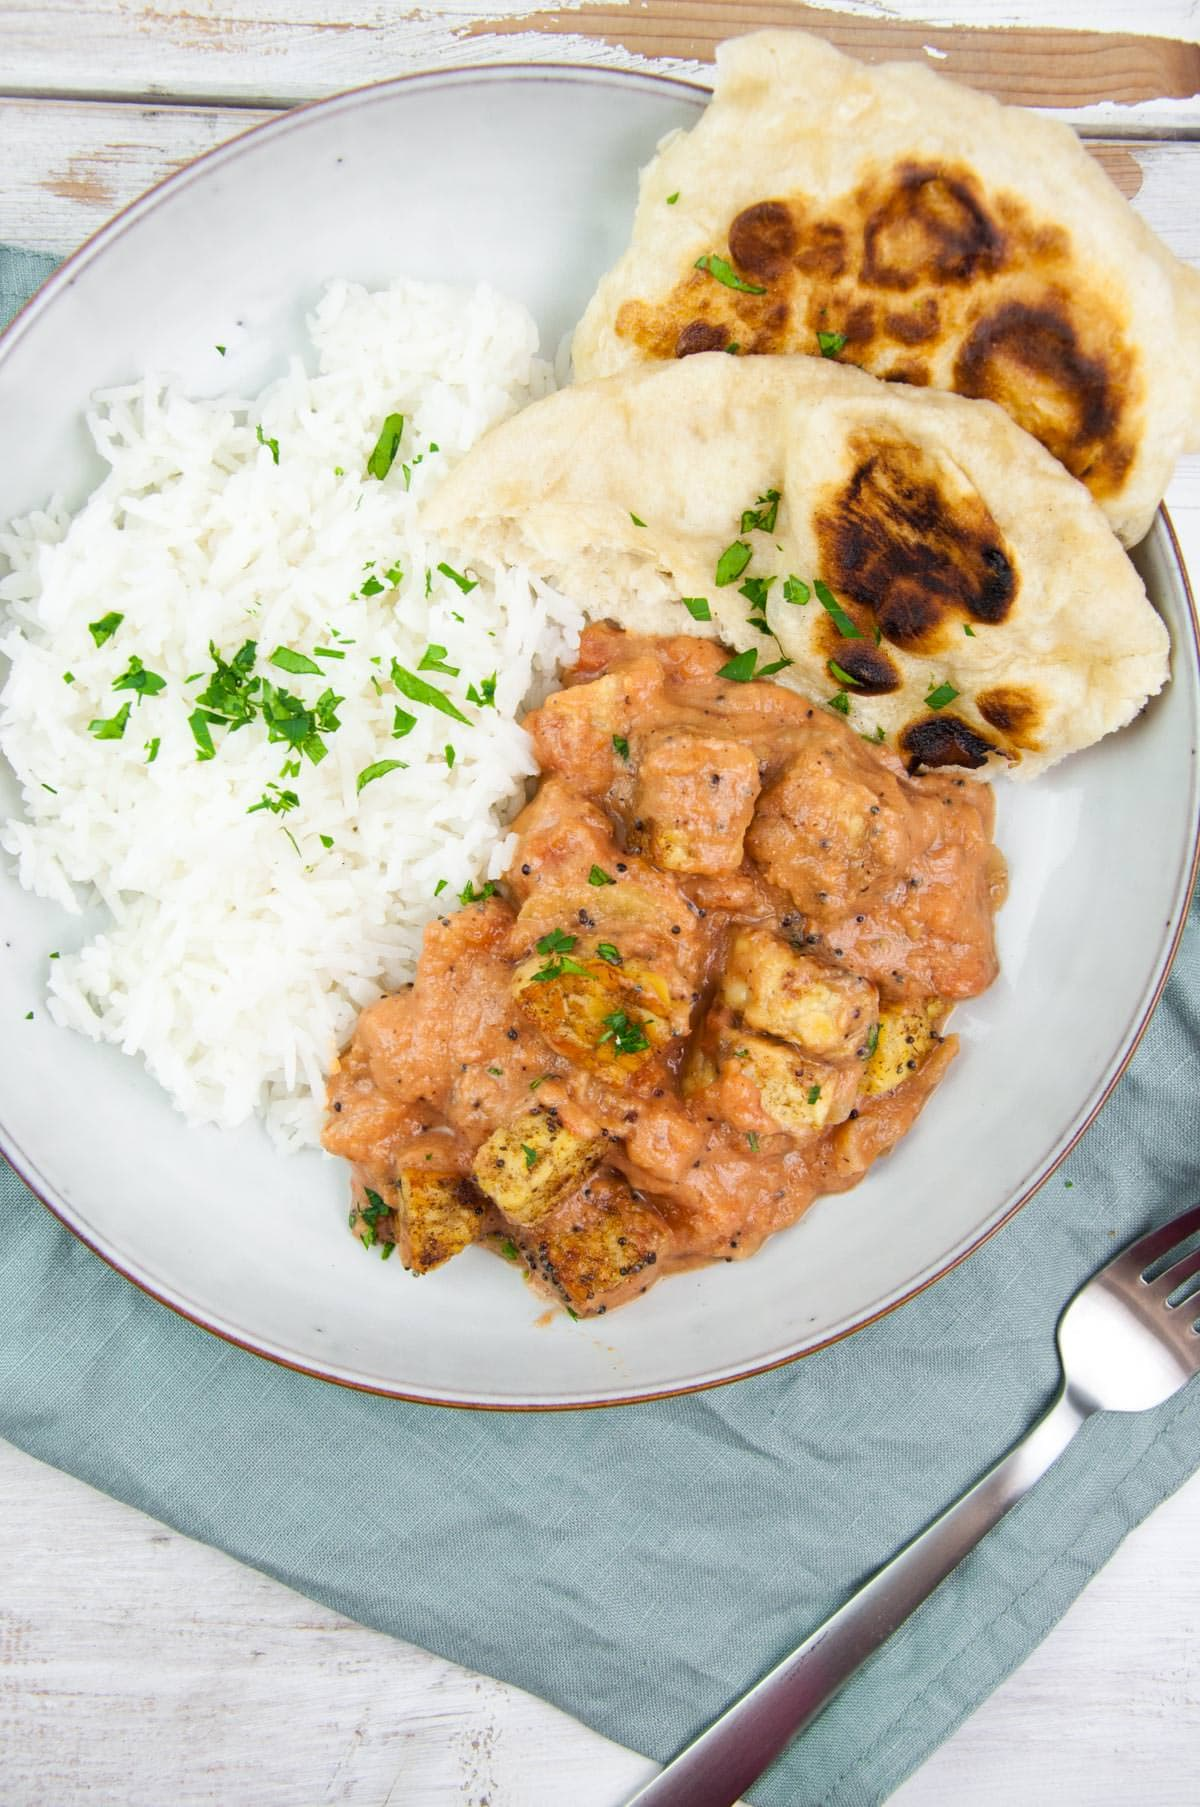 Vegan Tempeh Curry with basmati rice and naan